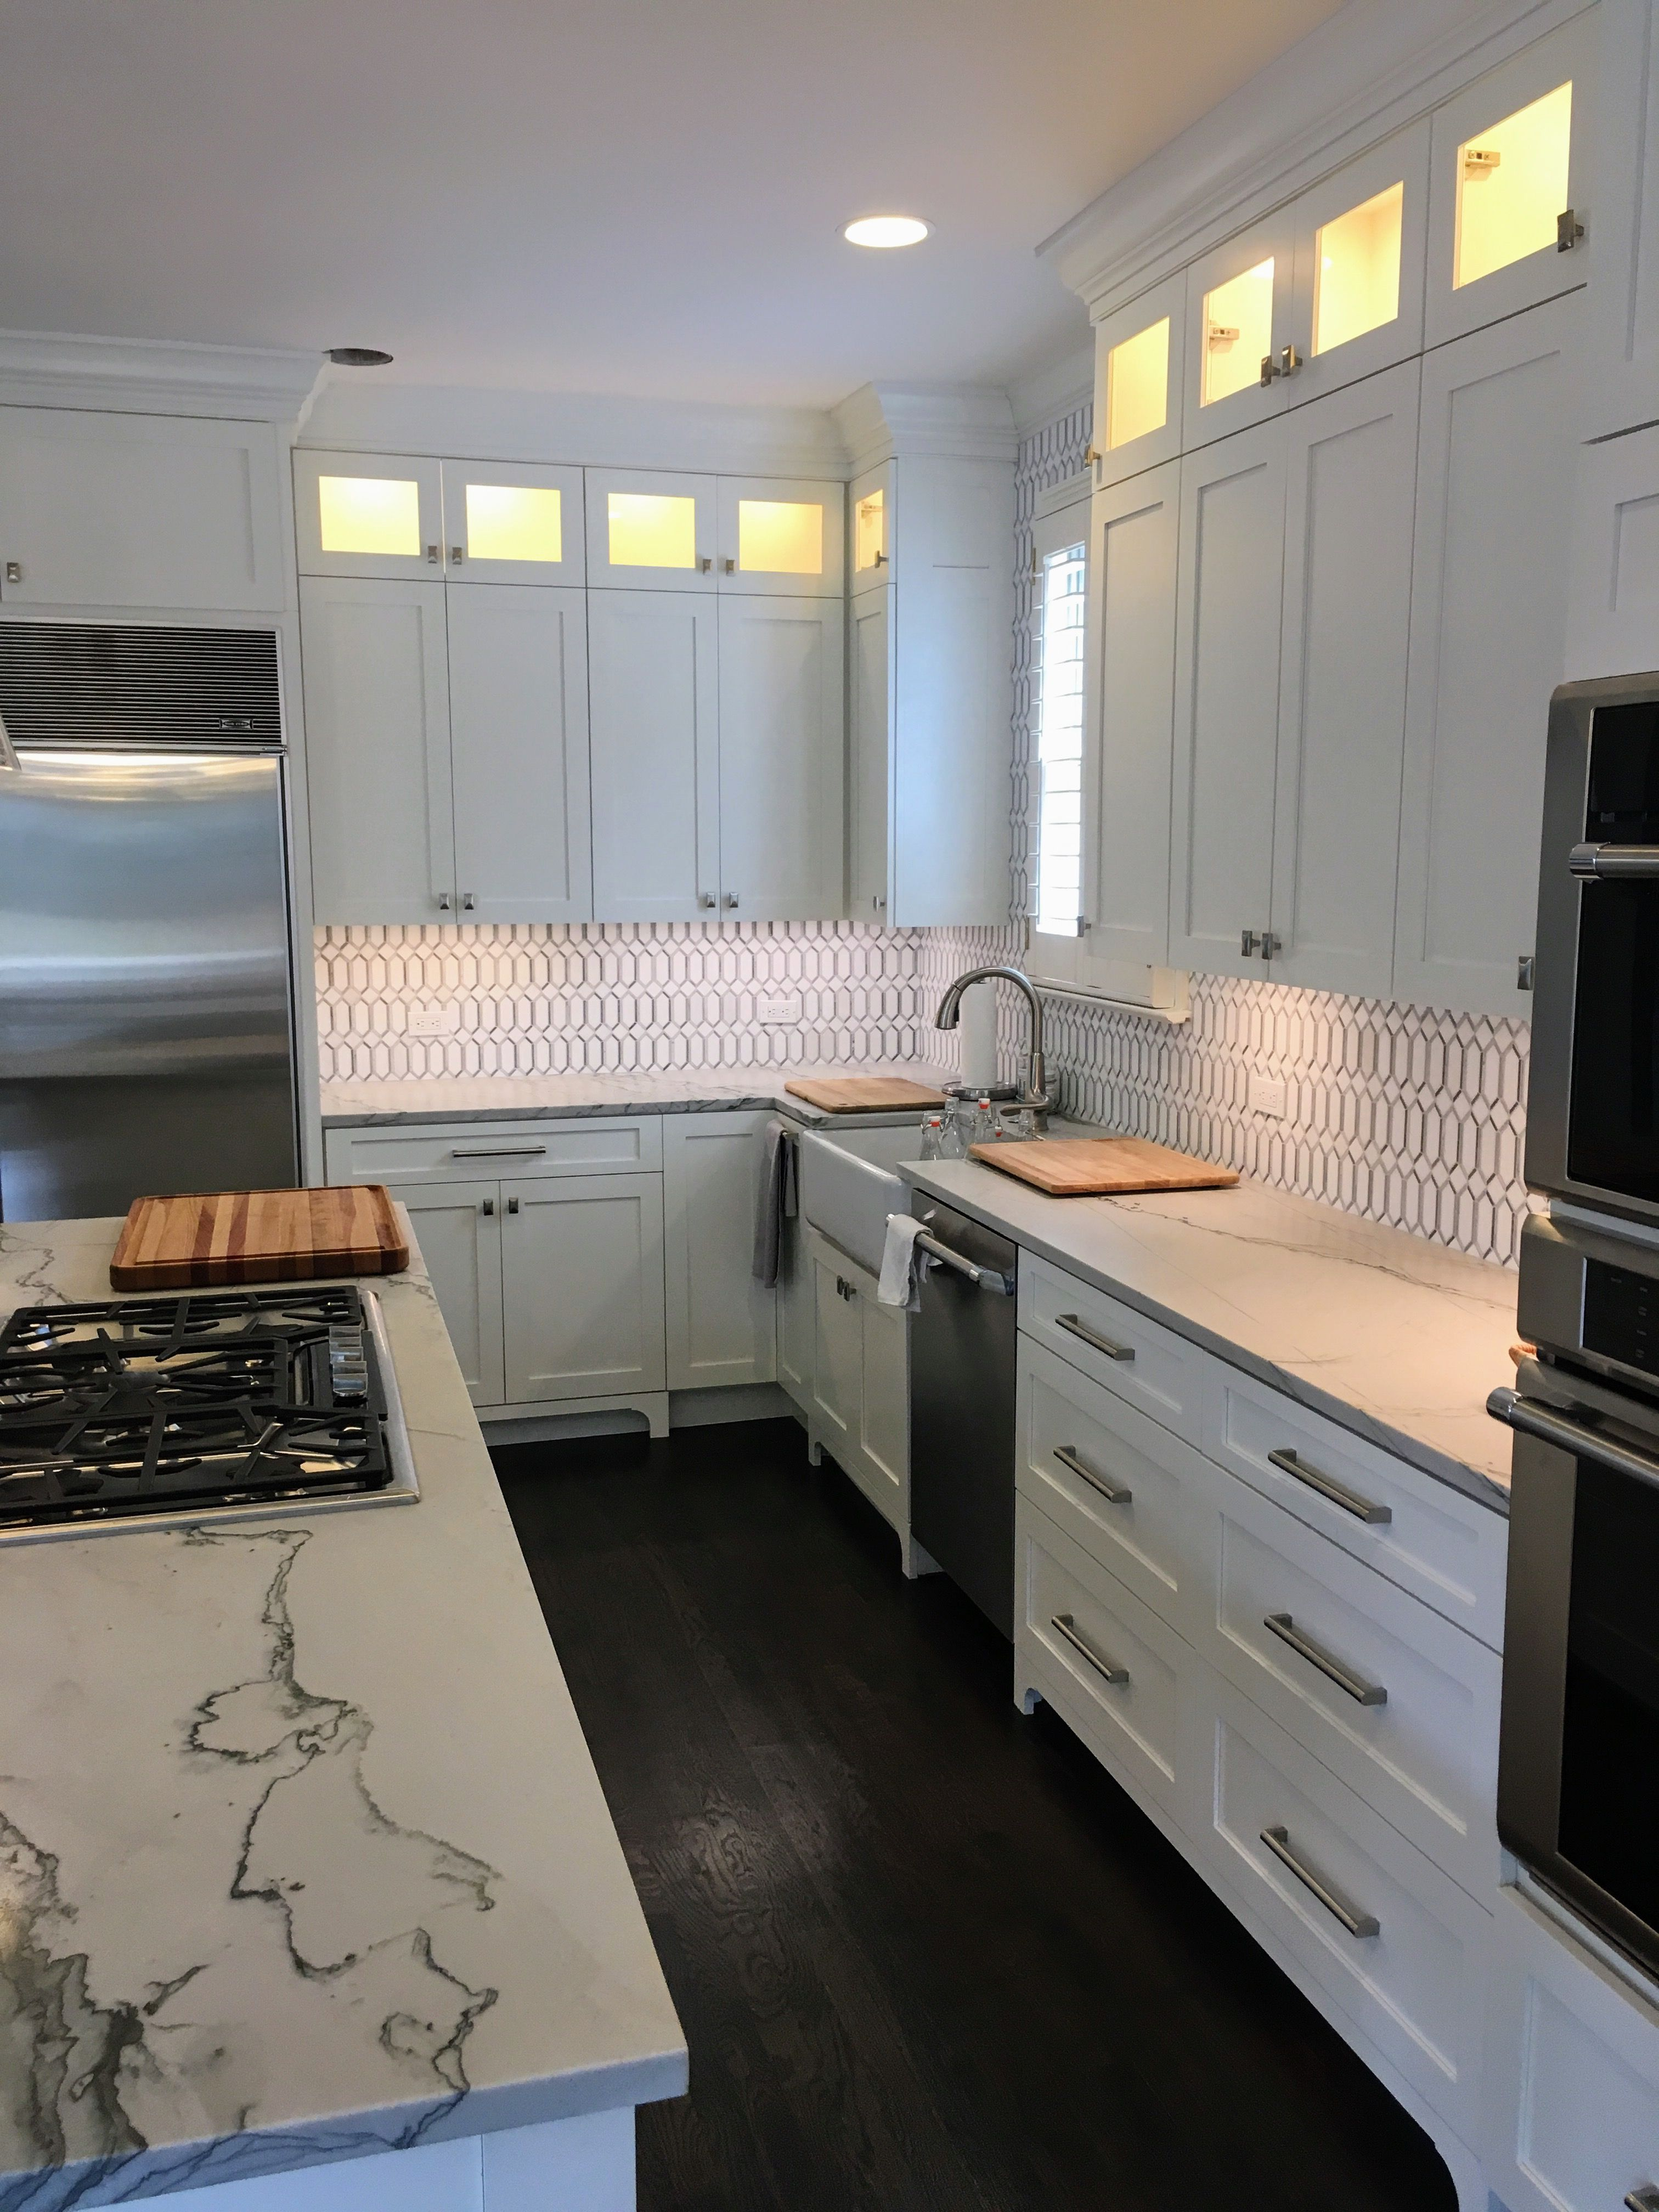 Finished Kitchen Shaker Style Full Overlay Benjamin Moore White Dove Lacquer Island W Used Kitchen Cabinets White Kitchen Cabinets Diy Kitchen Design Small